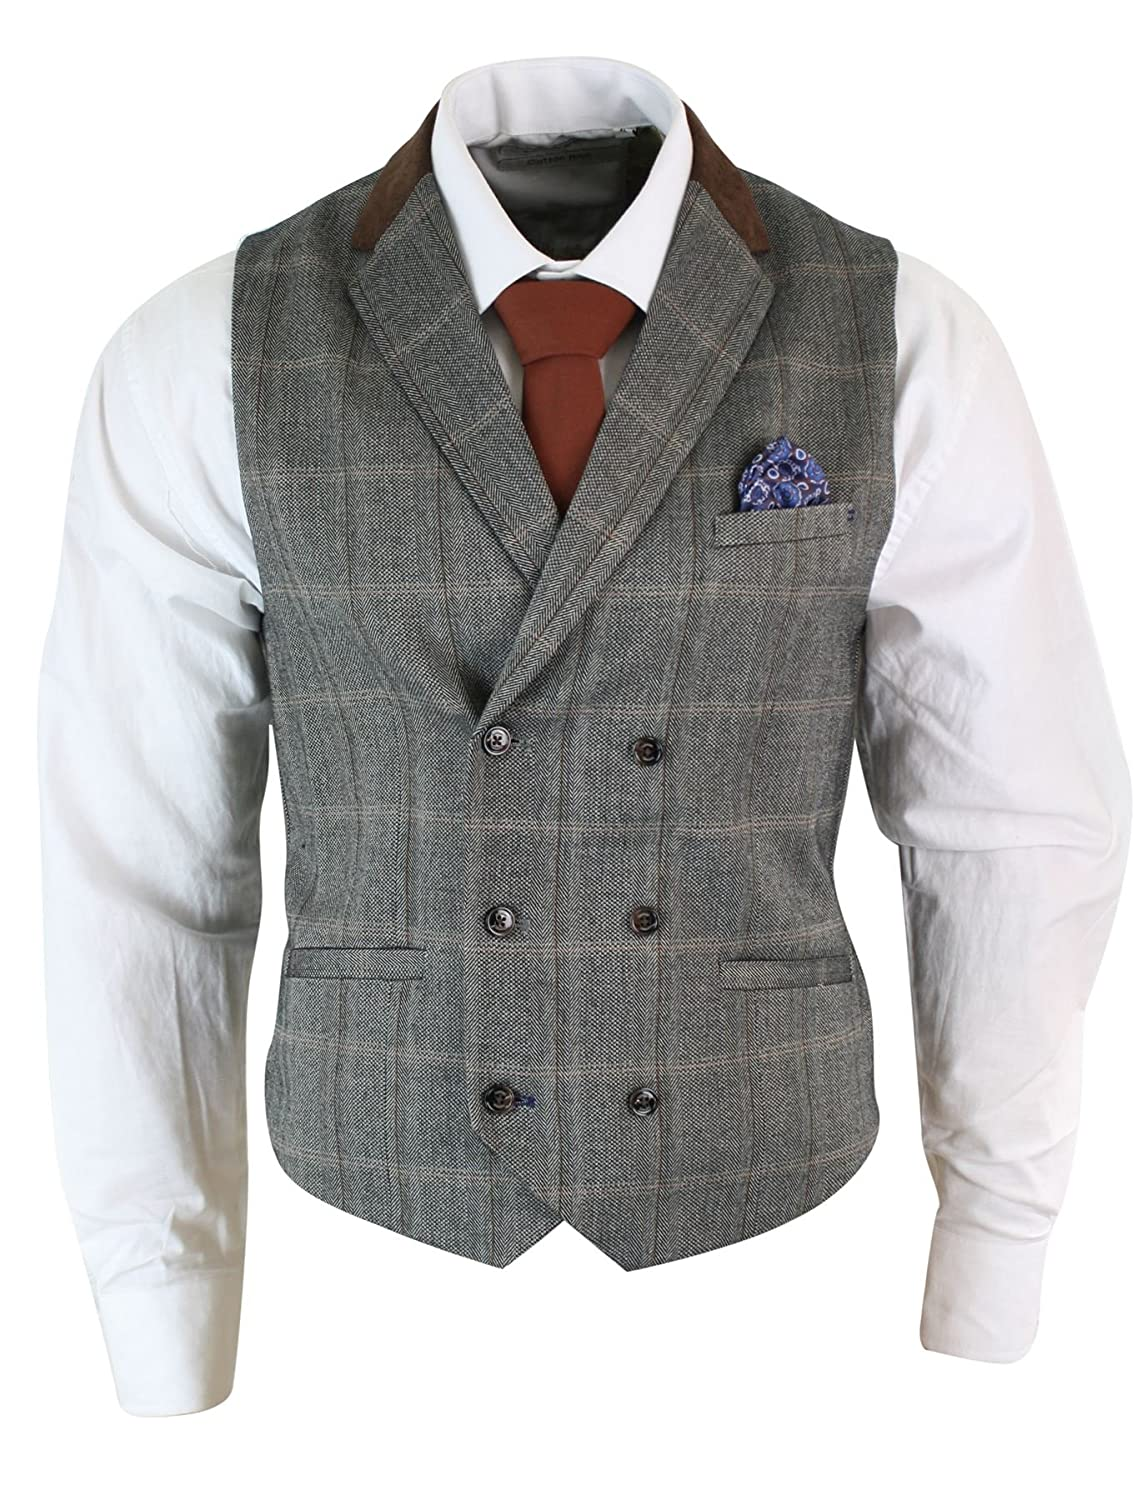 1920s Men's Fashion UK | Peaky Blinders Clothing Mens Double Breasted Herringbone Tweed Peaky Blinders Vintage Check Waistcoat £34.99 AT vintagedancer.com